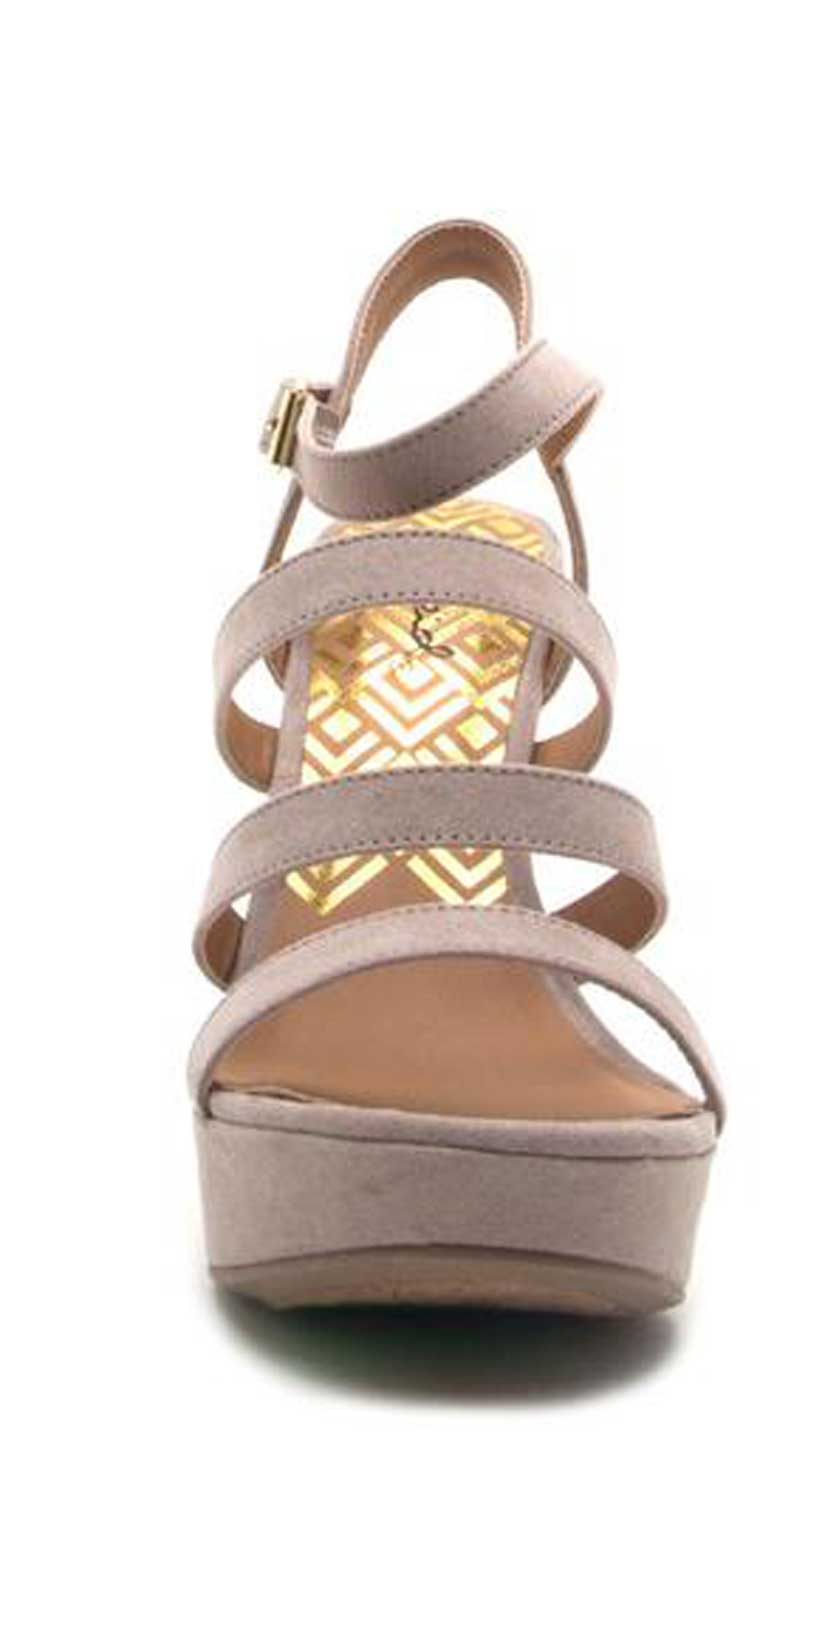 f6adc1f55 Qupid Shoes Glory Strappy Wedge Sandal in Taupe